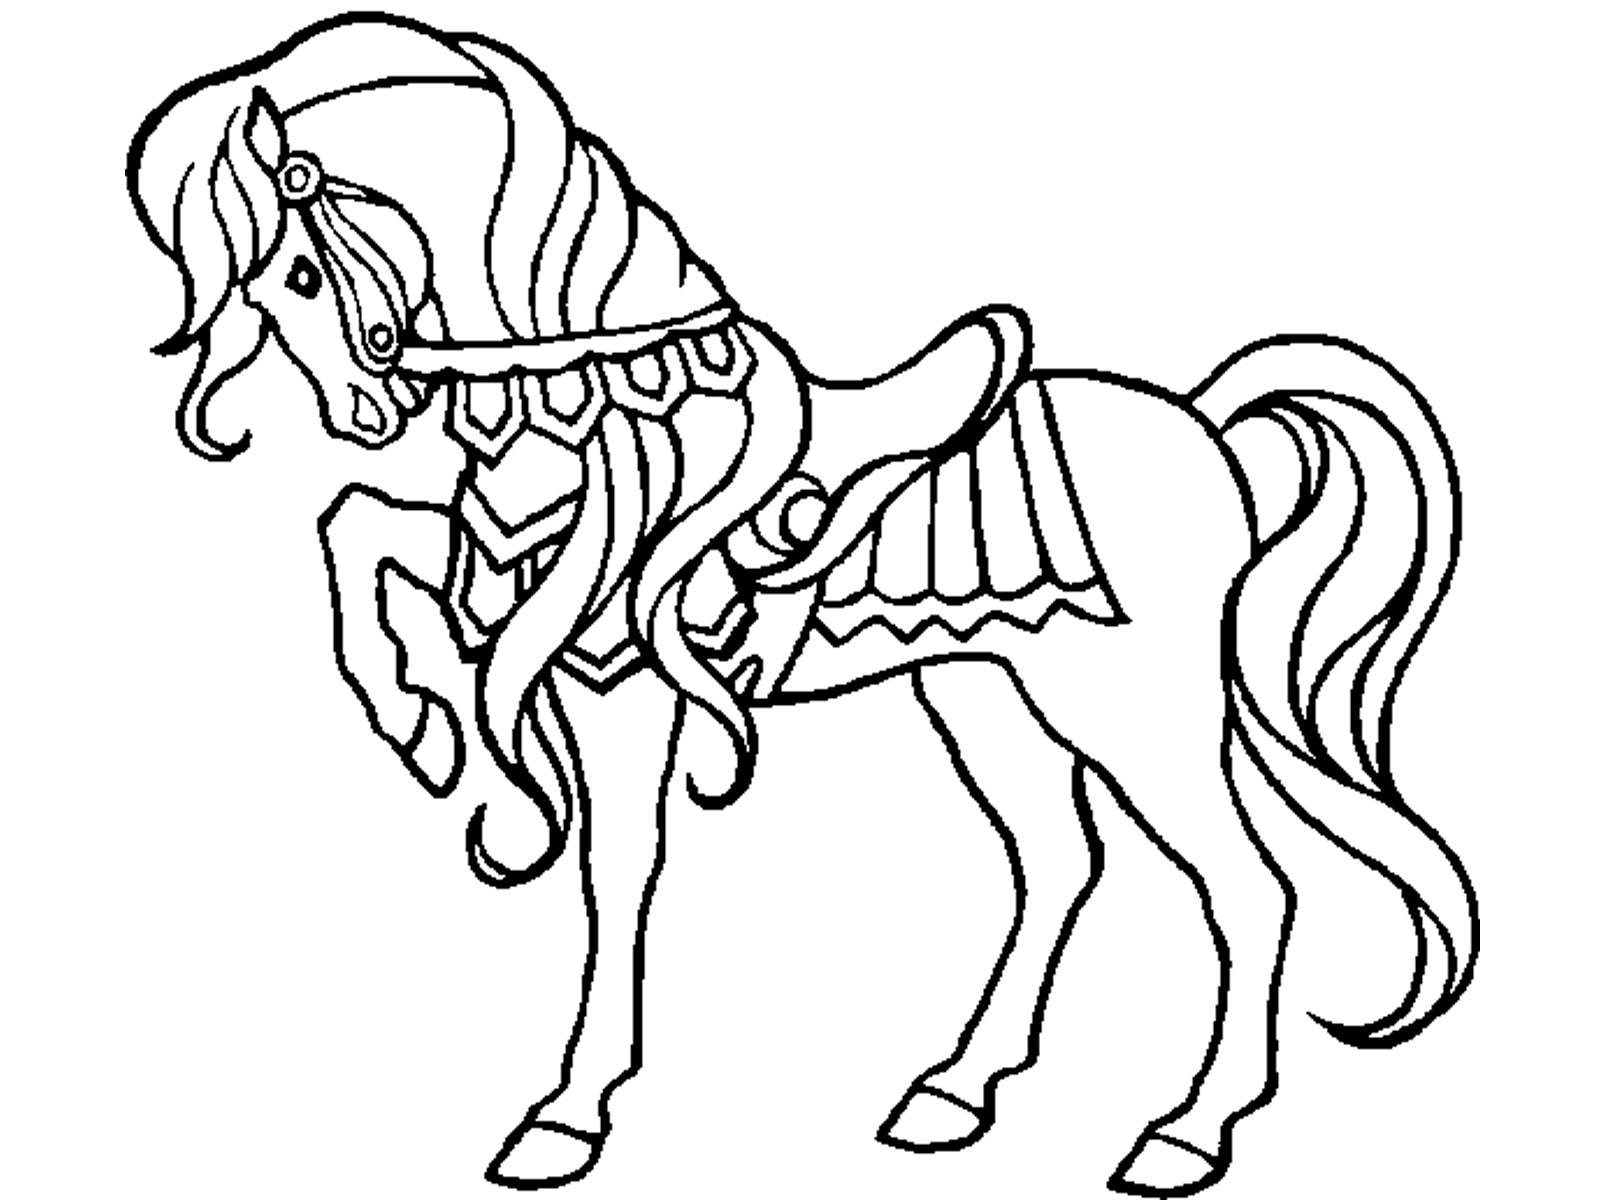 coloring horses printable 9 horse coloring pages free pdf document download printable horses coloring